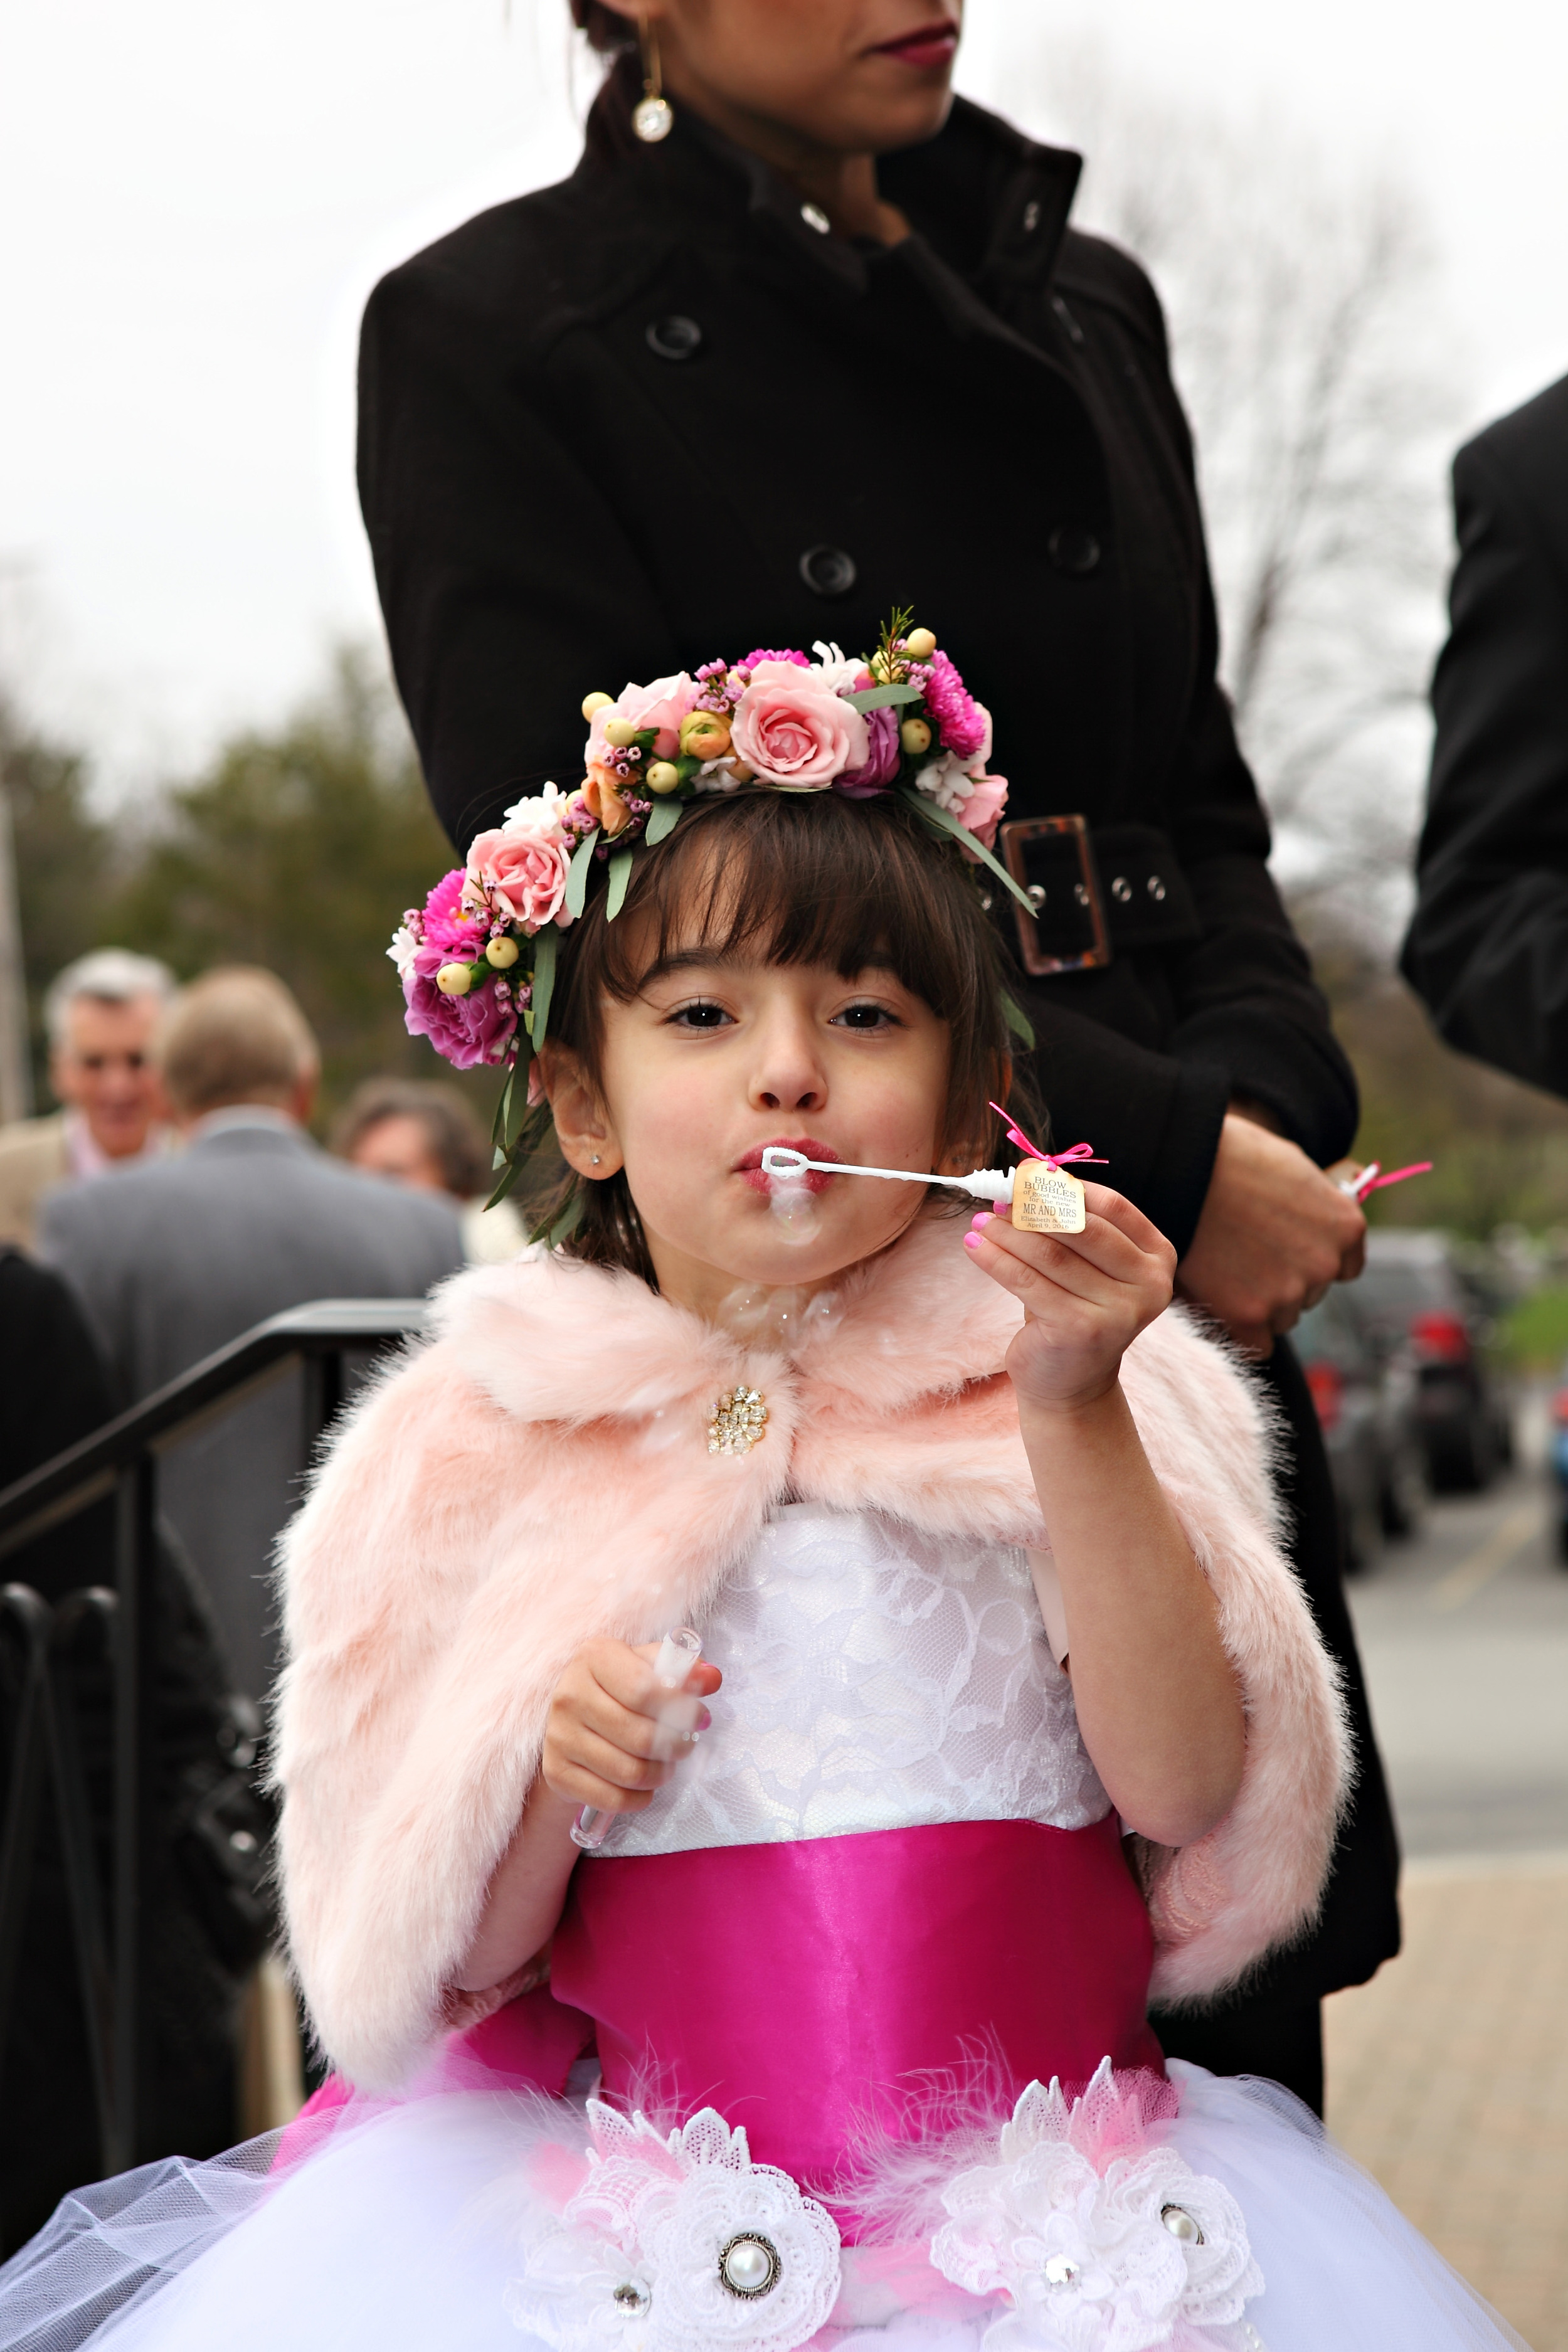 The adorable flower girl, Soleil, daughter of the Matron of Honor. How precious is she?